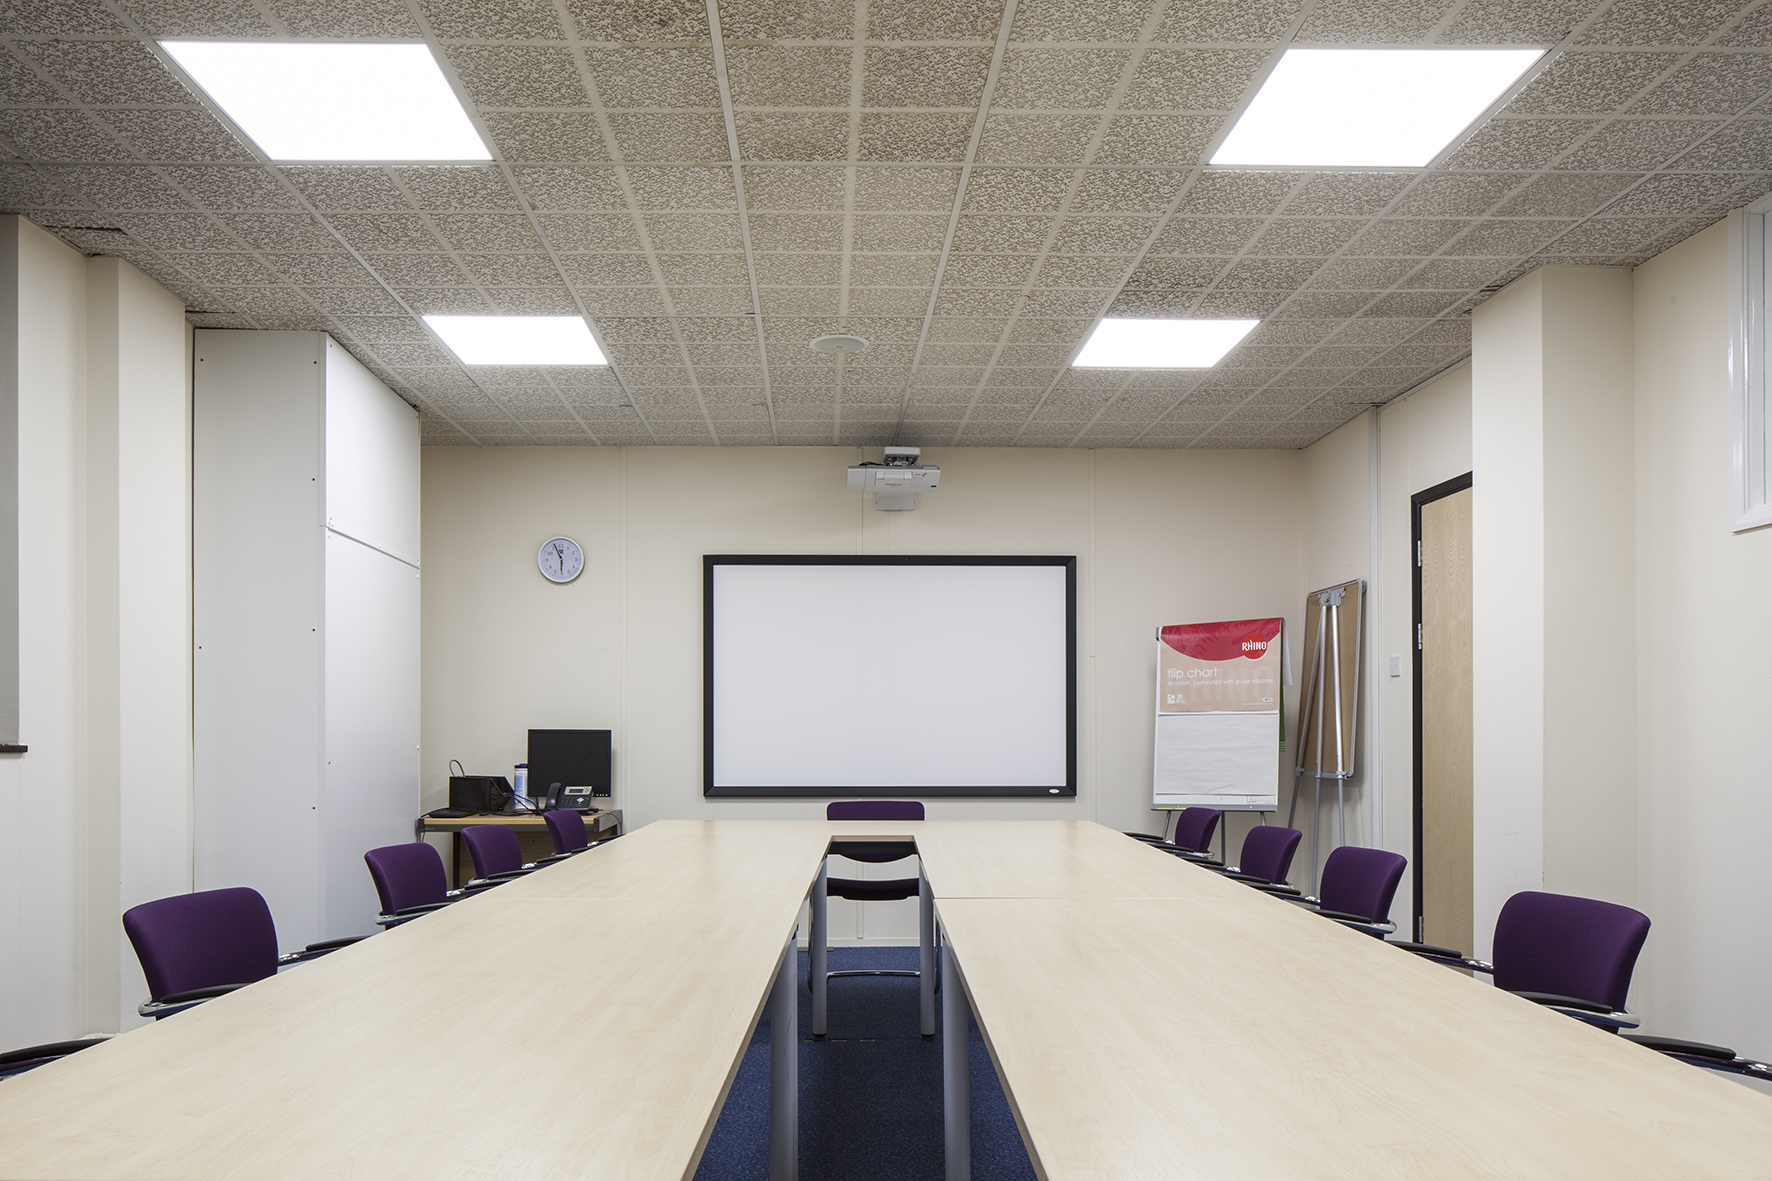 Led Office Lights St Albans City And District Council Invest In Goodlight Led Panels